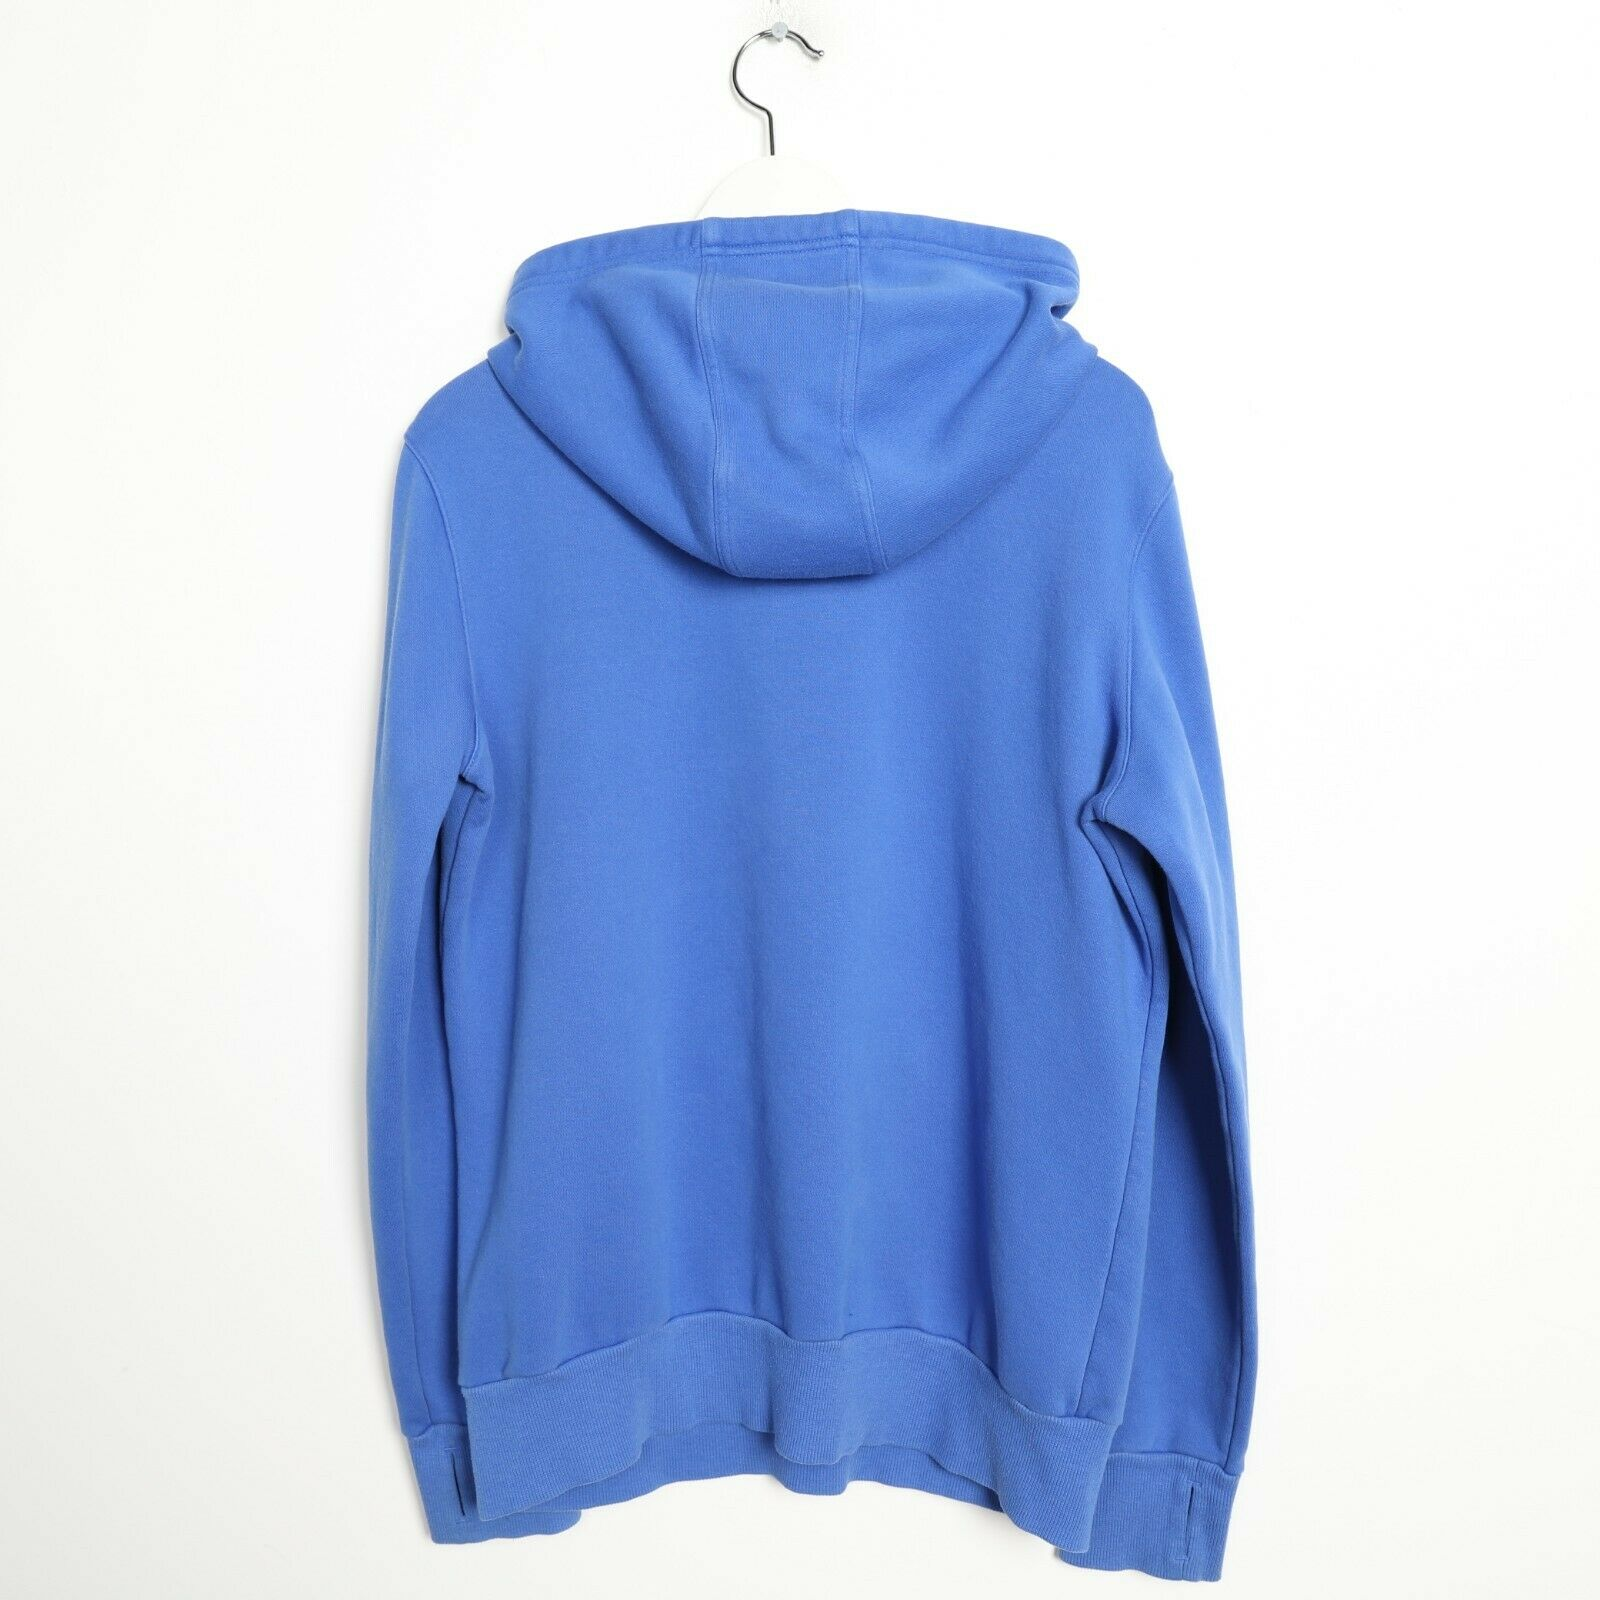 Vintage Women's ADIDAS Big Logo Hoodie Sweatshirt Blue | Large L